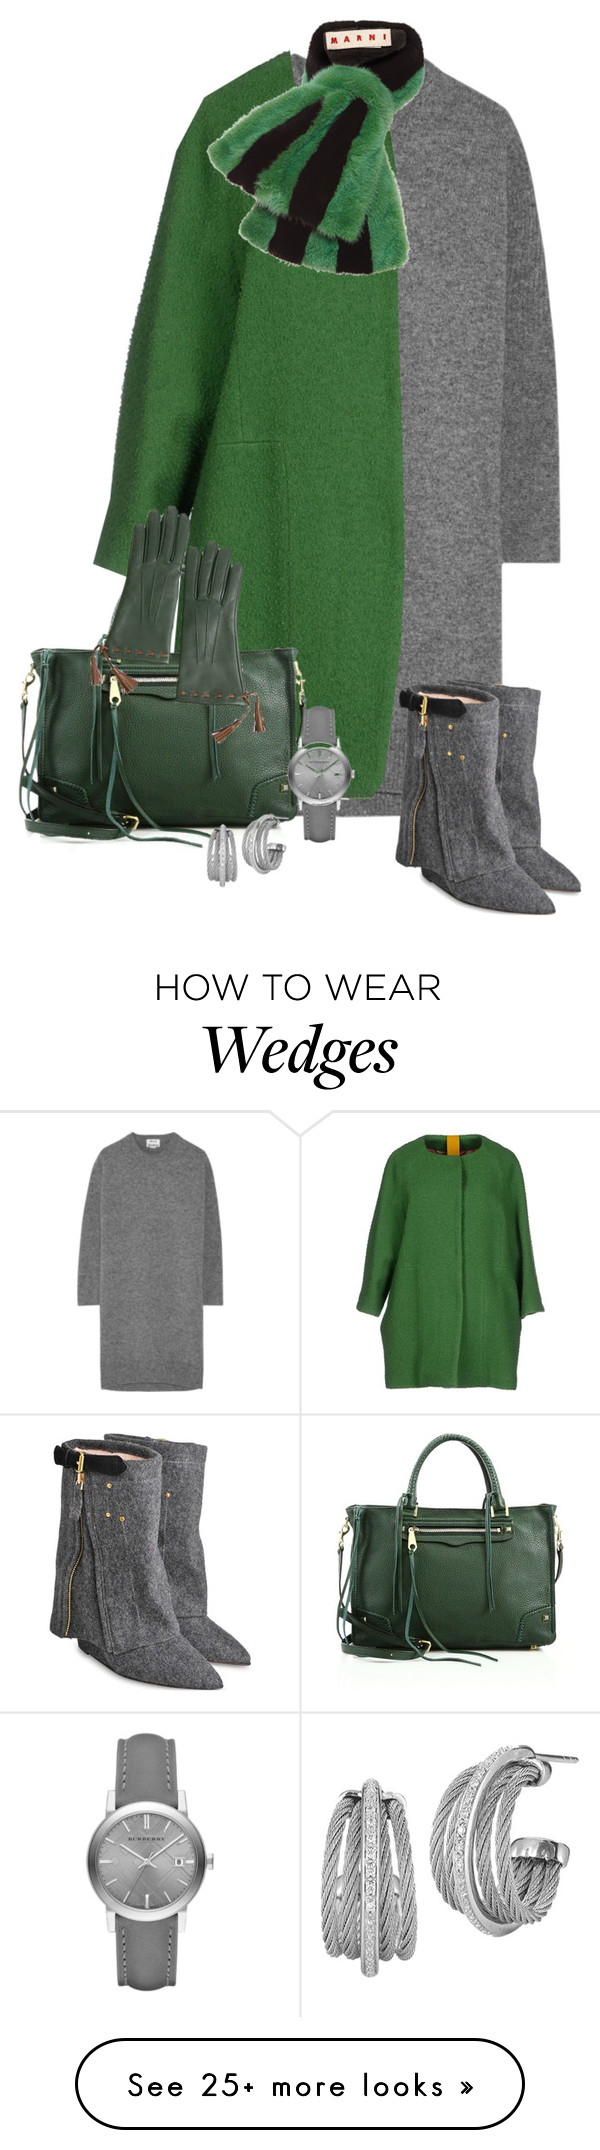 """""""2457"""" by mljilina on Polyvore featuring Acne Studios, Michele Rossi, Jérôme Dreyfuss, Rebecca Minkoff, Marni, Overland Sheepskin Co., Burberry and Charriol"""